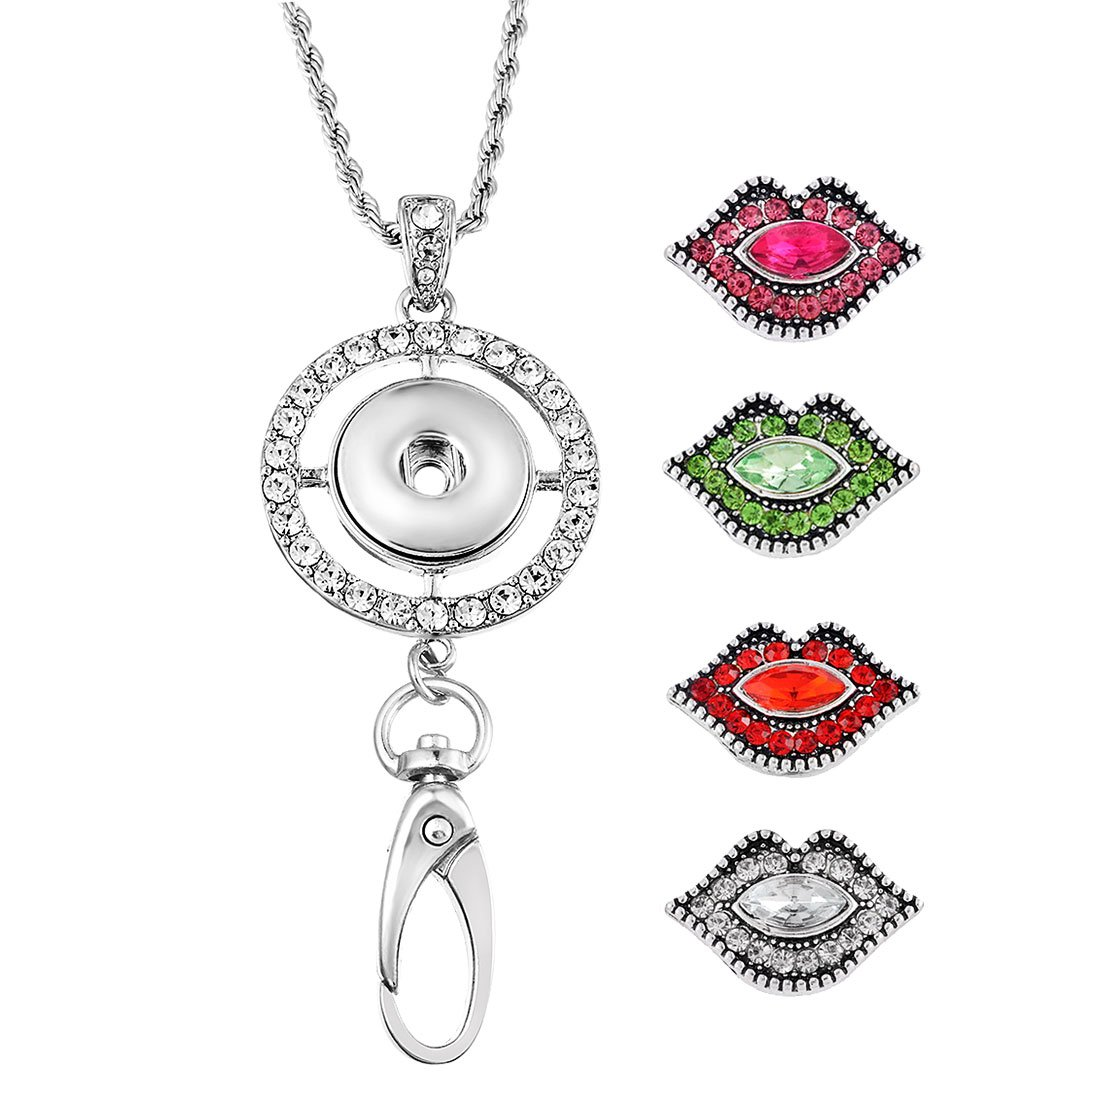 Souarts Womens Office Lanyard ID Badges Holder Necklace with 4pcs Lip Rhinestone Snap Charms Jewelry Pendant Clip